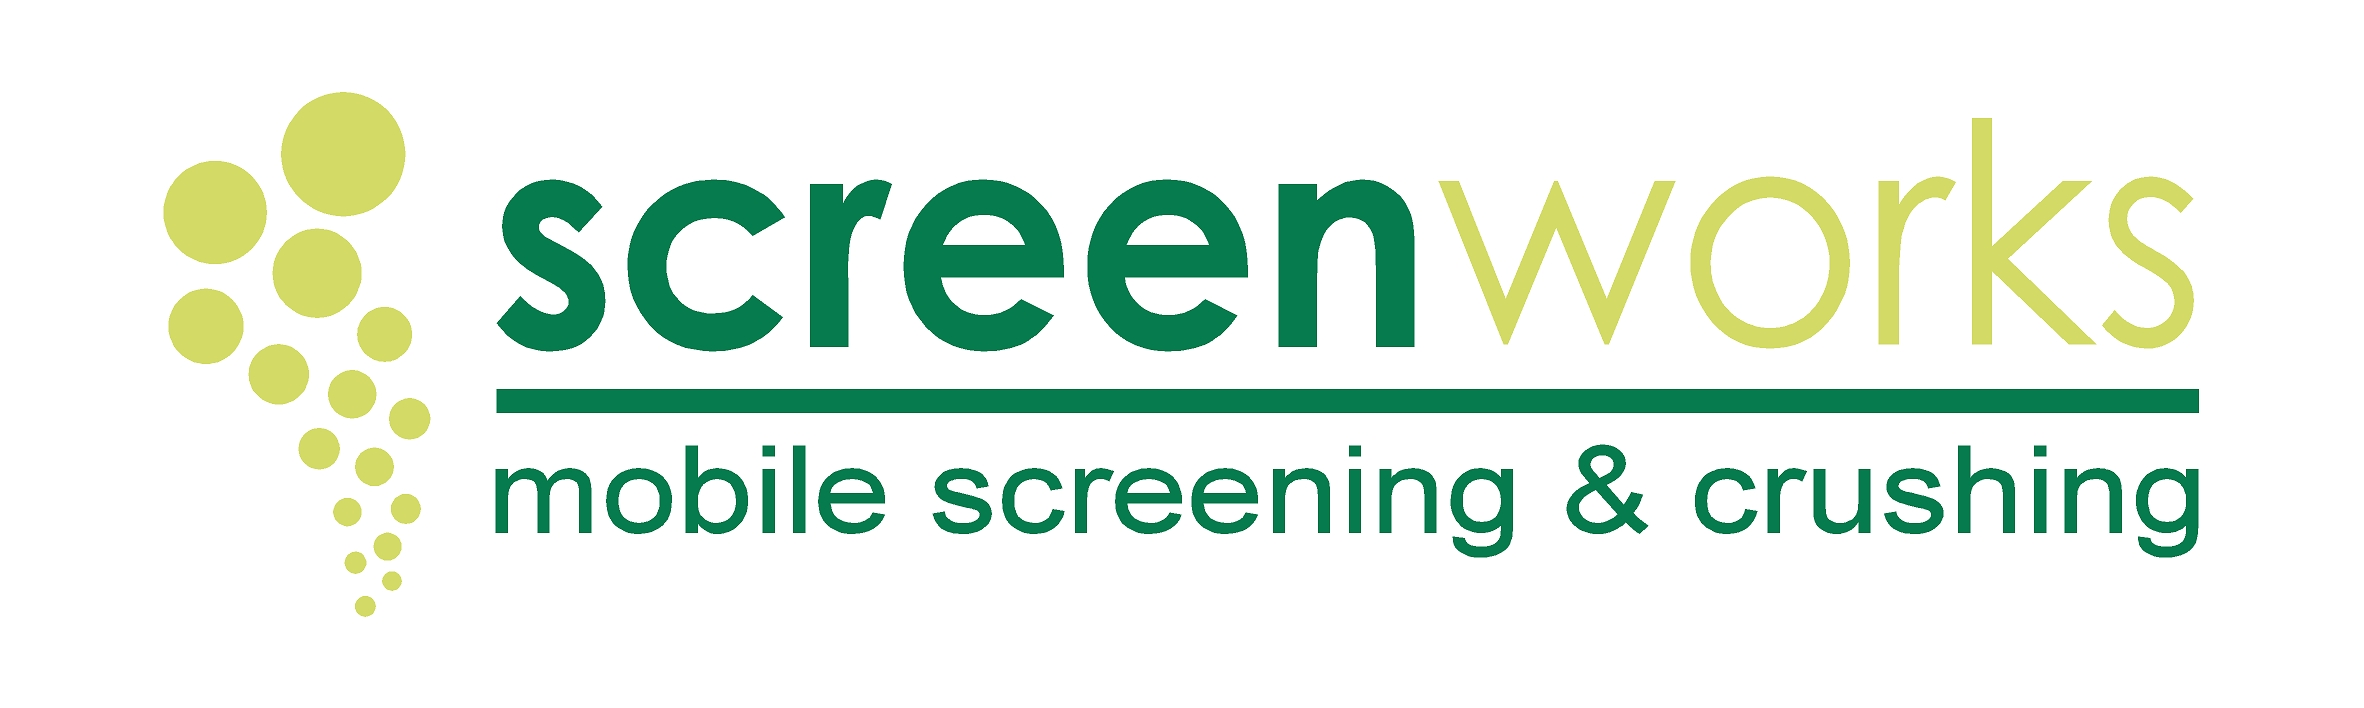 Southern Screenworks Limited